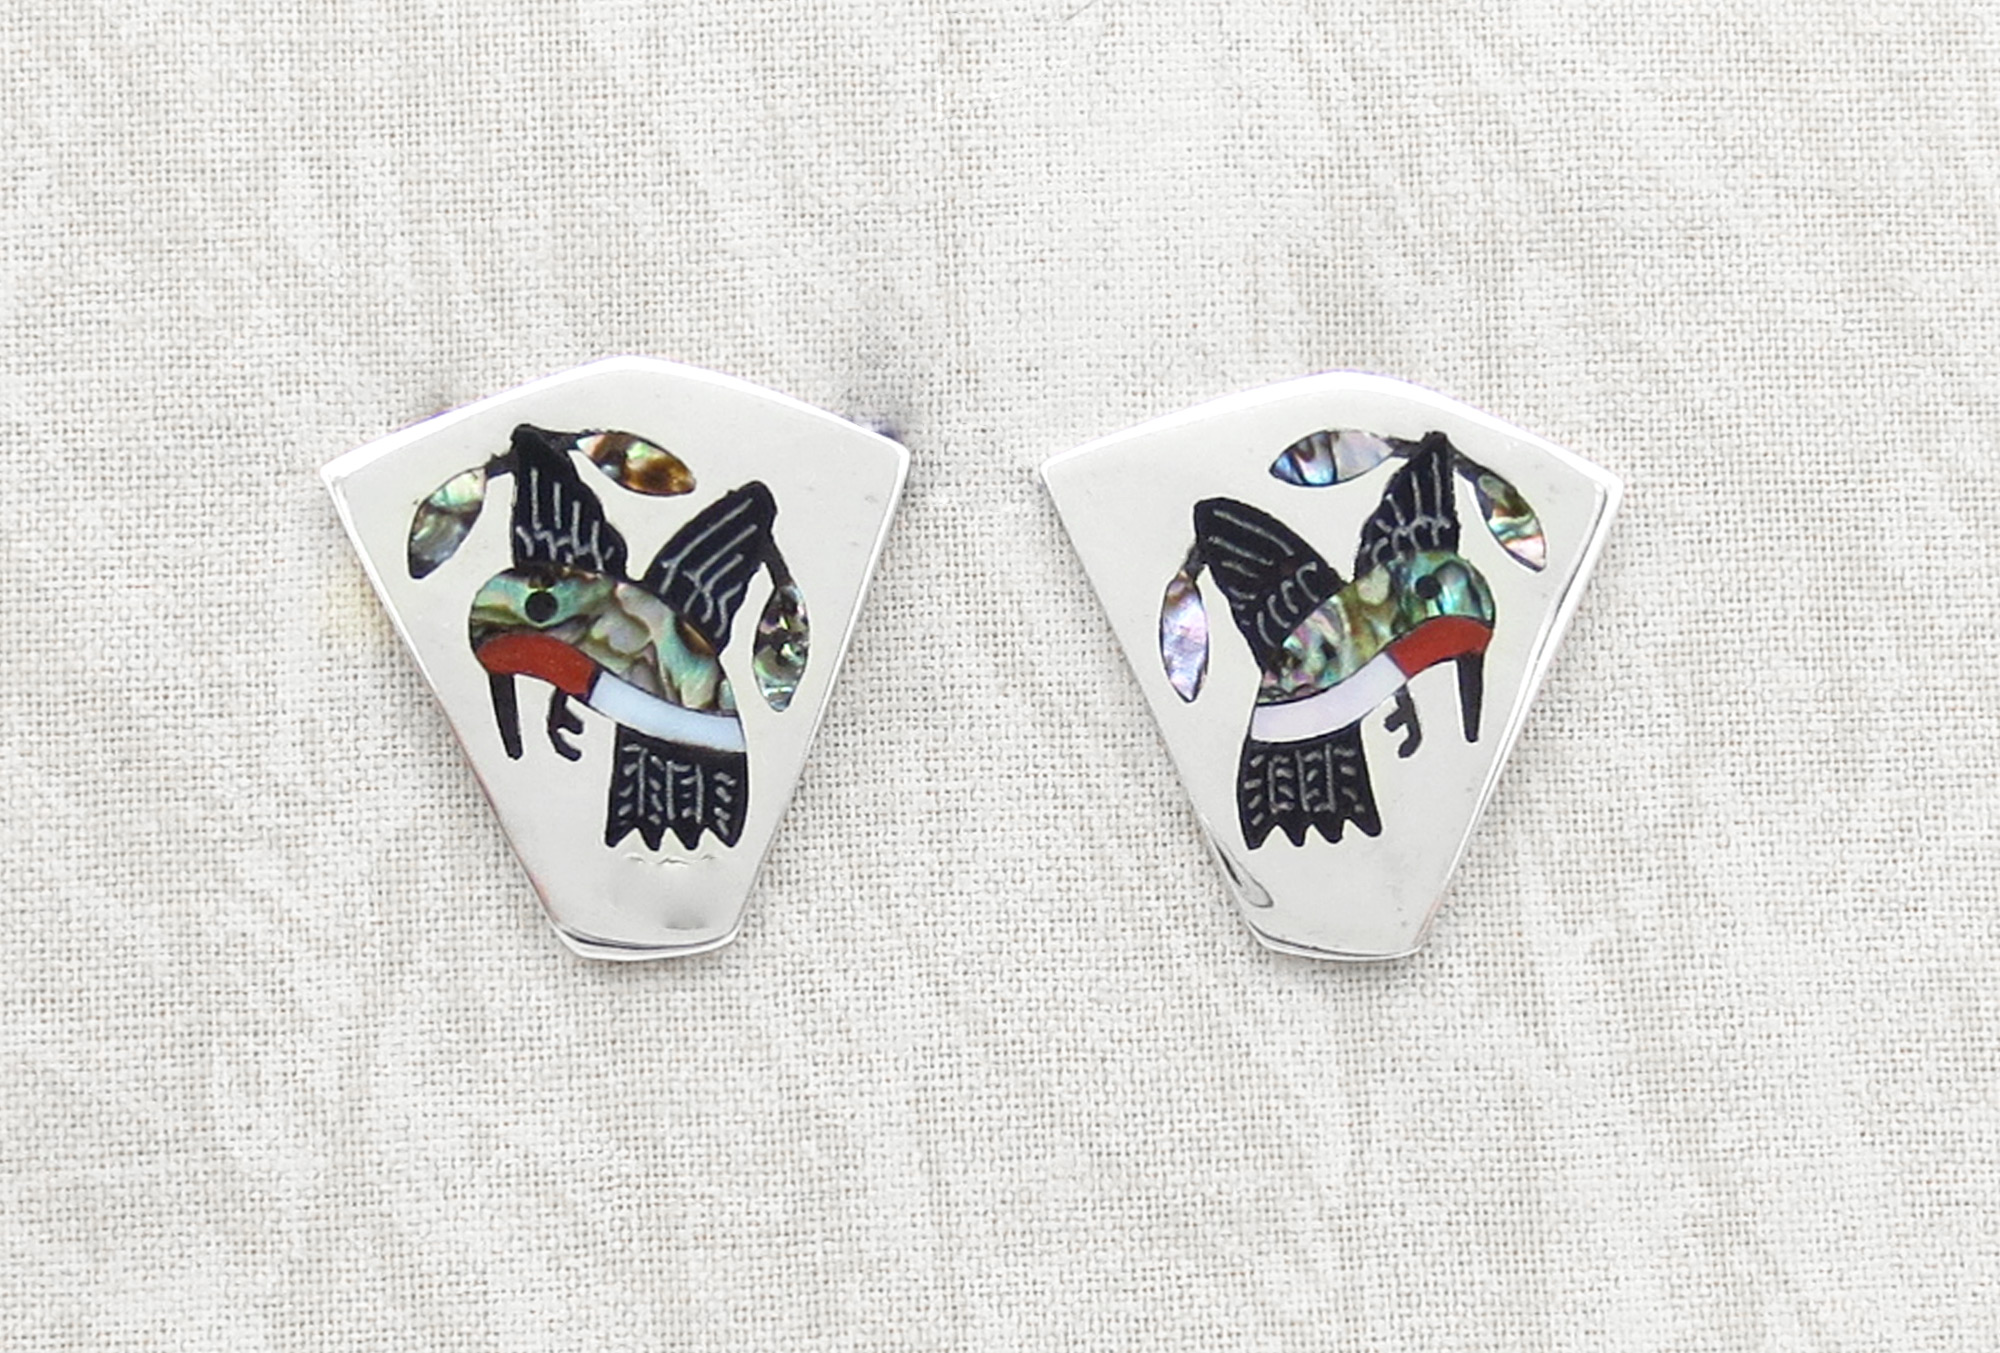 Hummingbird Inlay Earrings Zuni Native American Jewelry - 3960dt